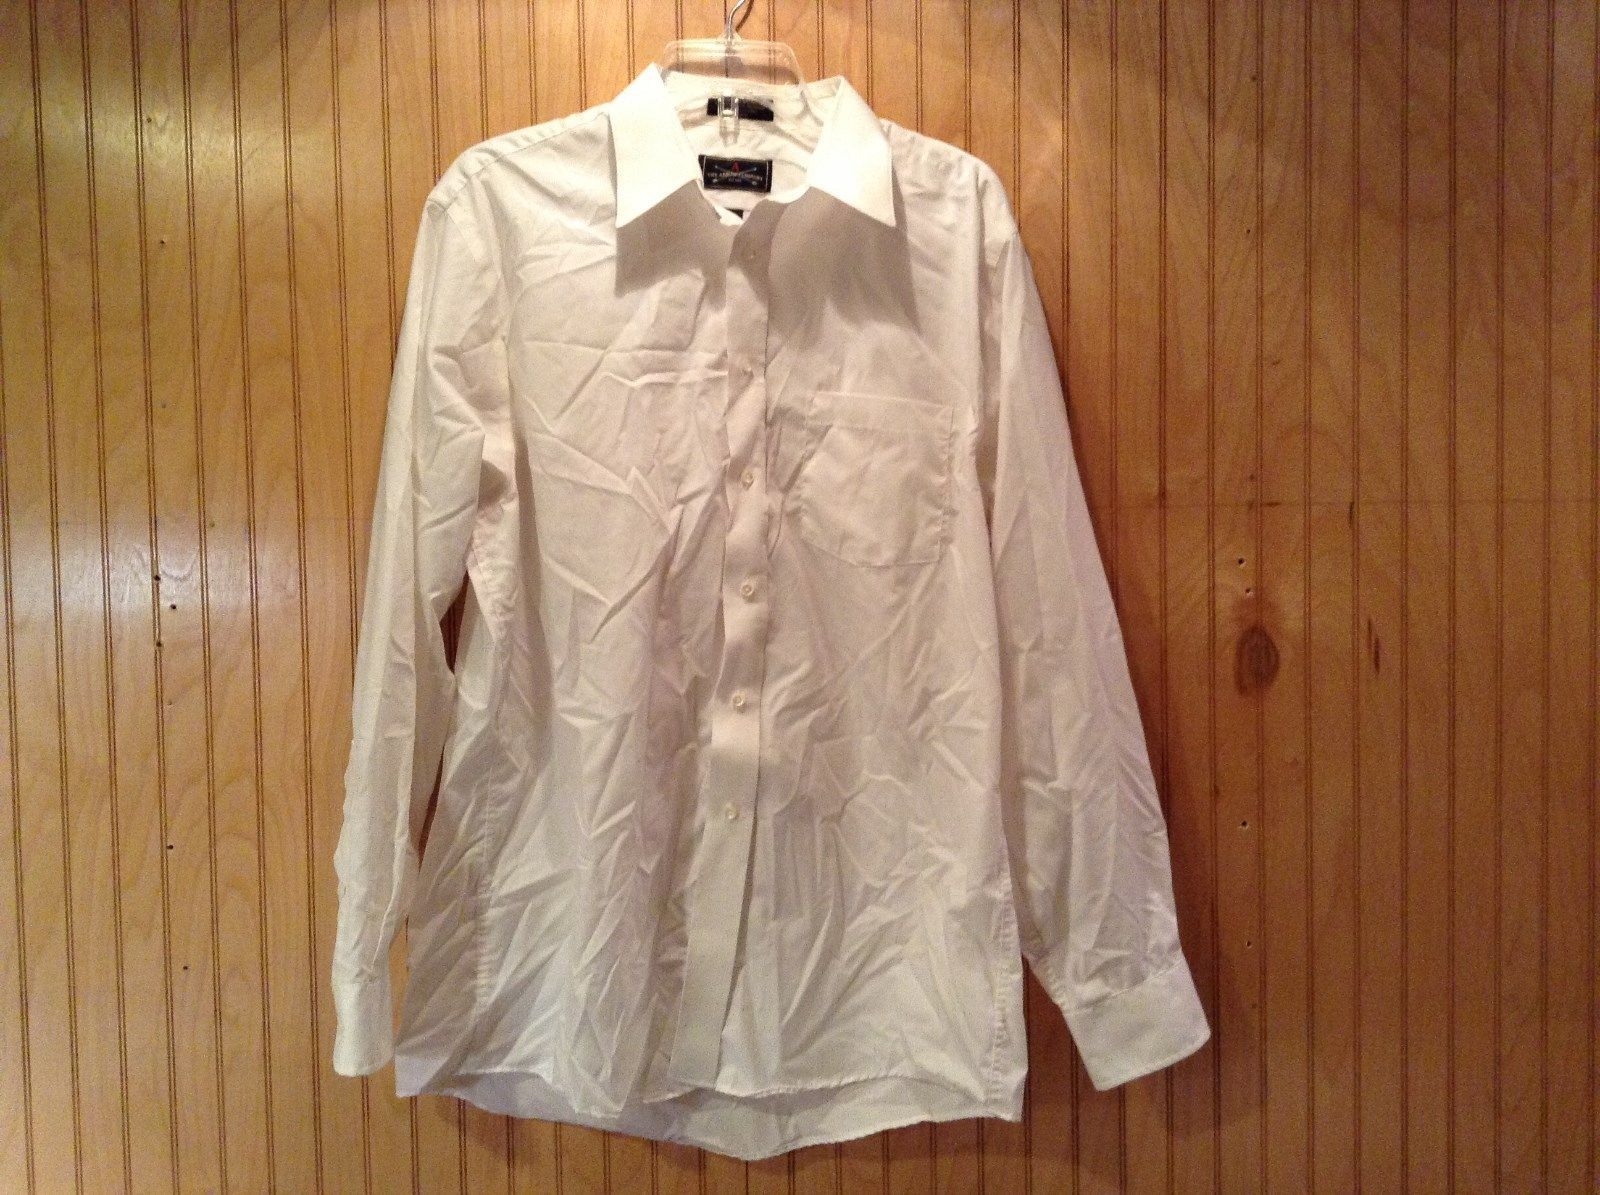 Long Sleeve White Dress Shirt The Arrow Company Button Down Size 34 to 35